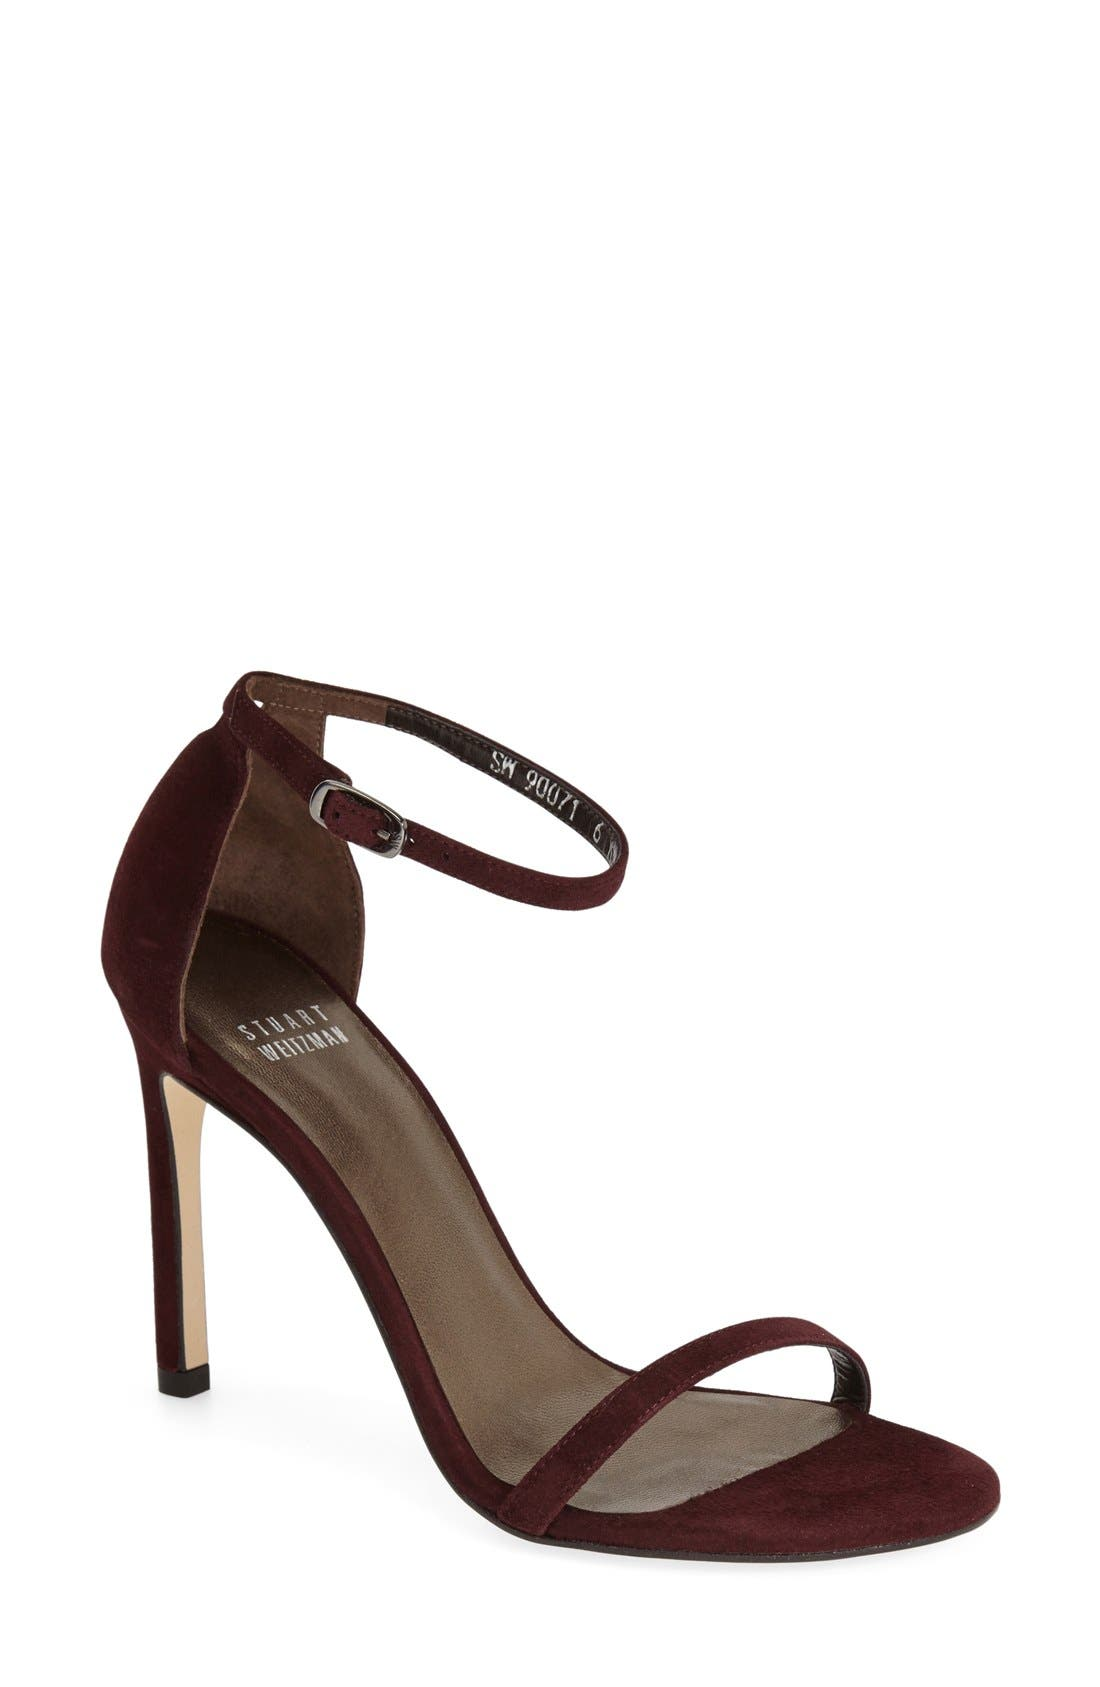 Nudistsong Ankle Strap Sandal,                             Main thumbnail 34, color,